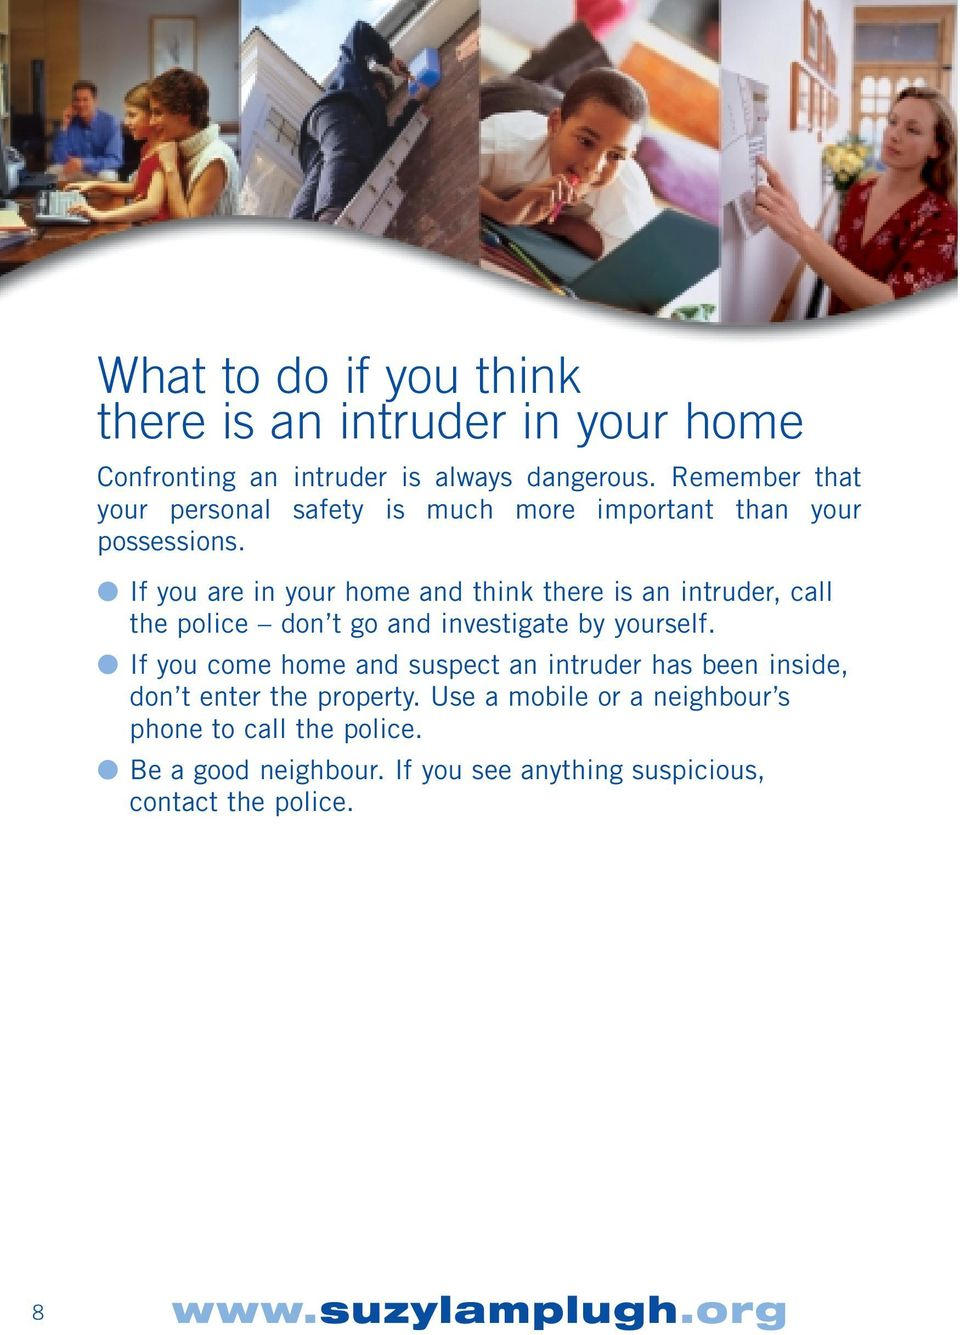 If you are in your home and think there is an intruder, call the police don t go and investigate by yourself.